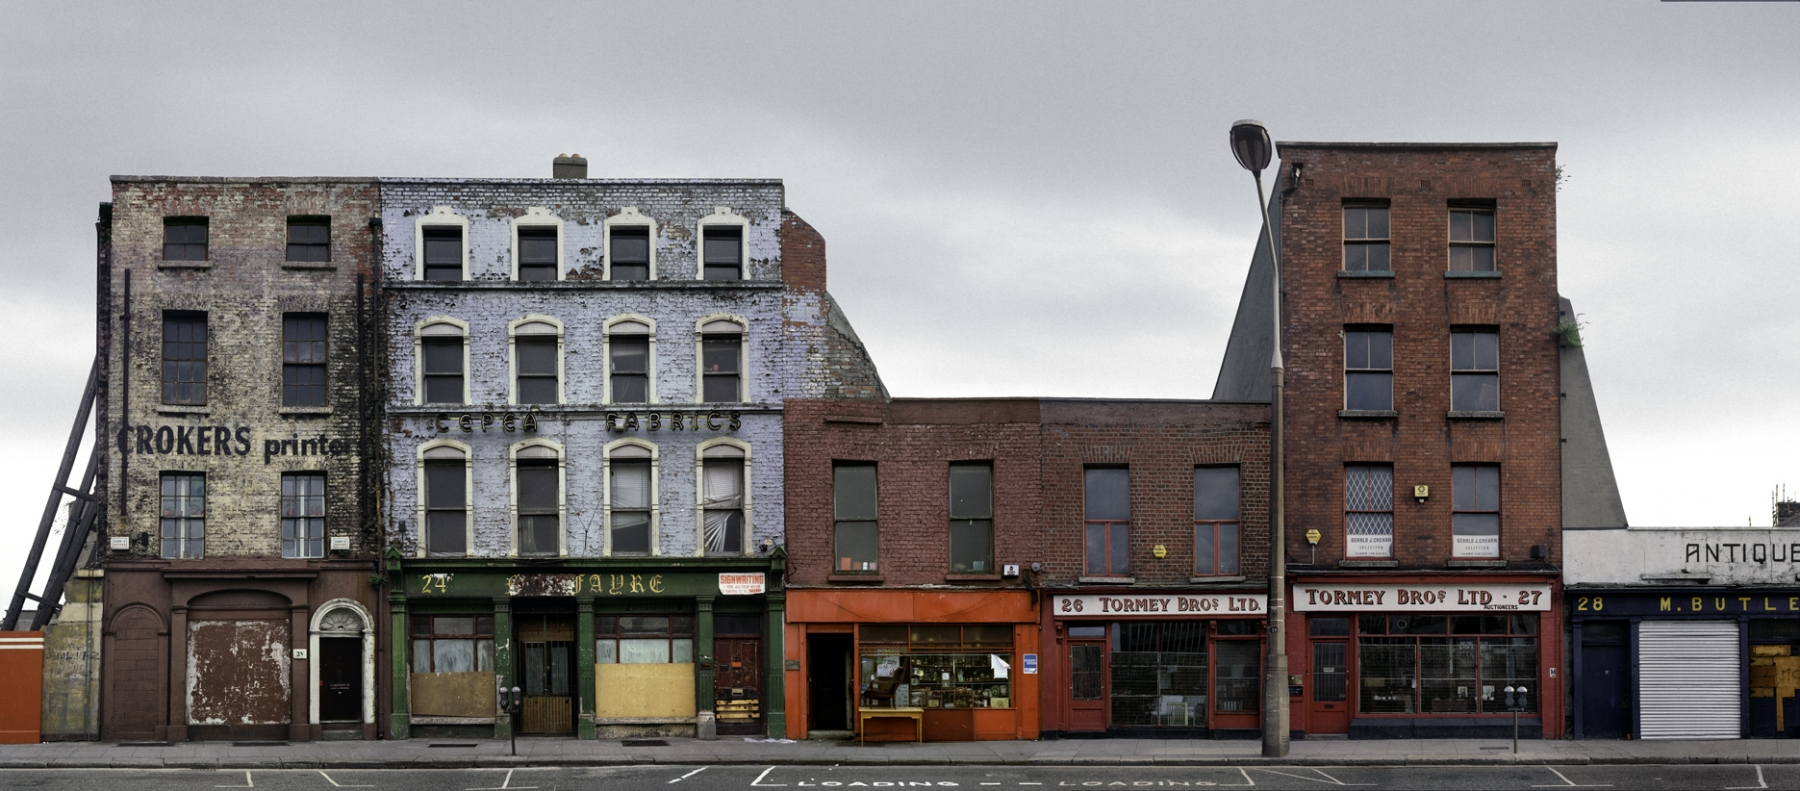 Auction House and Antique shops on Lower Ormond Quay, Dublin 1988 by David Jazay